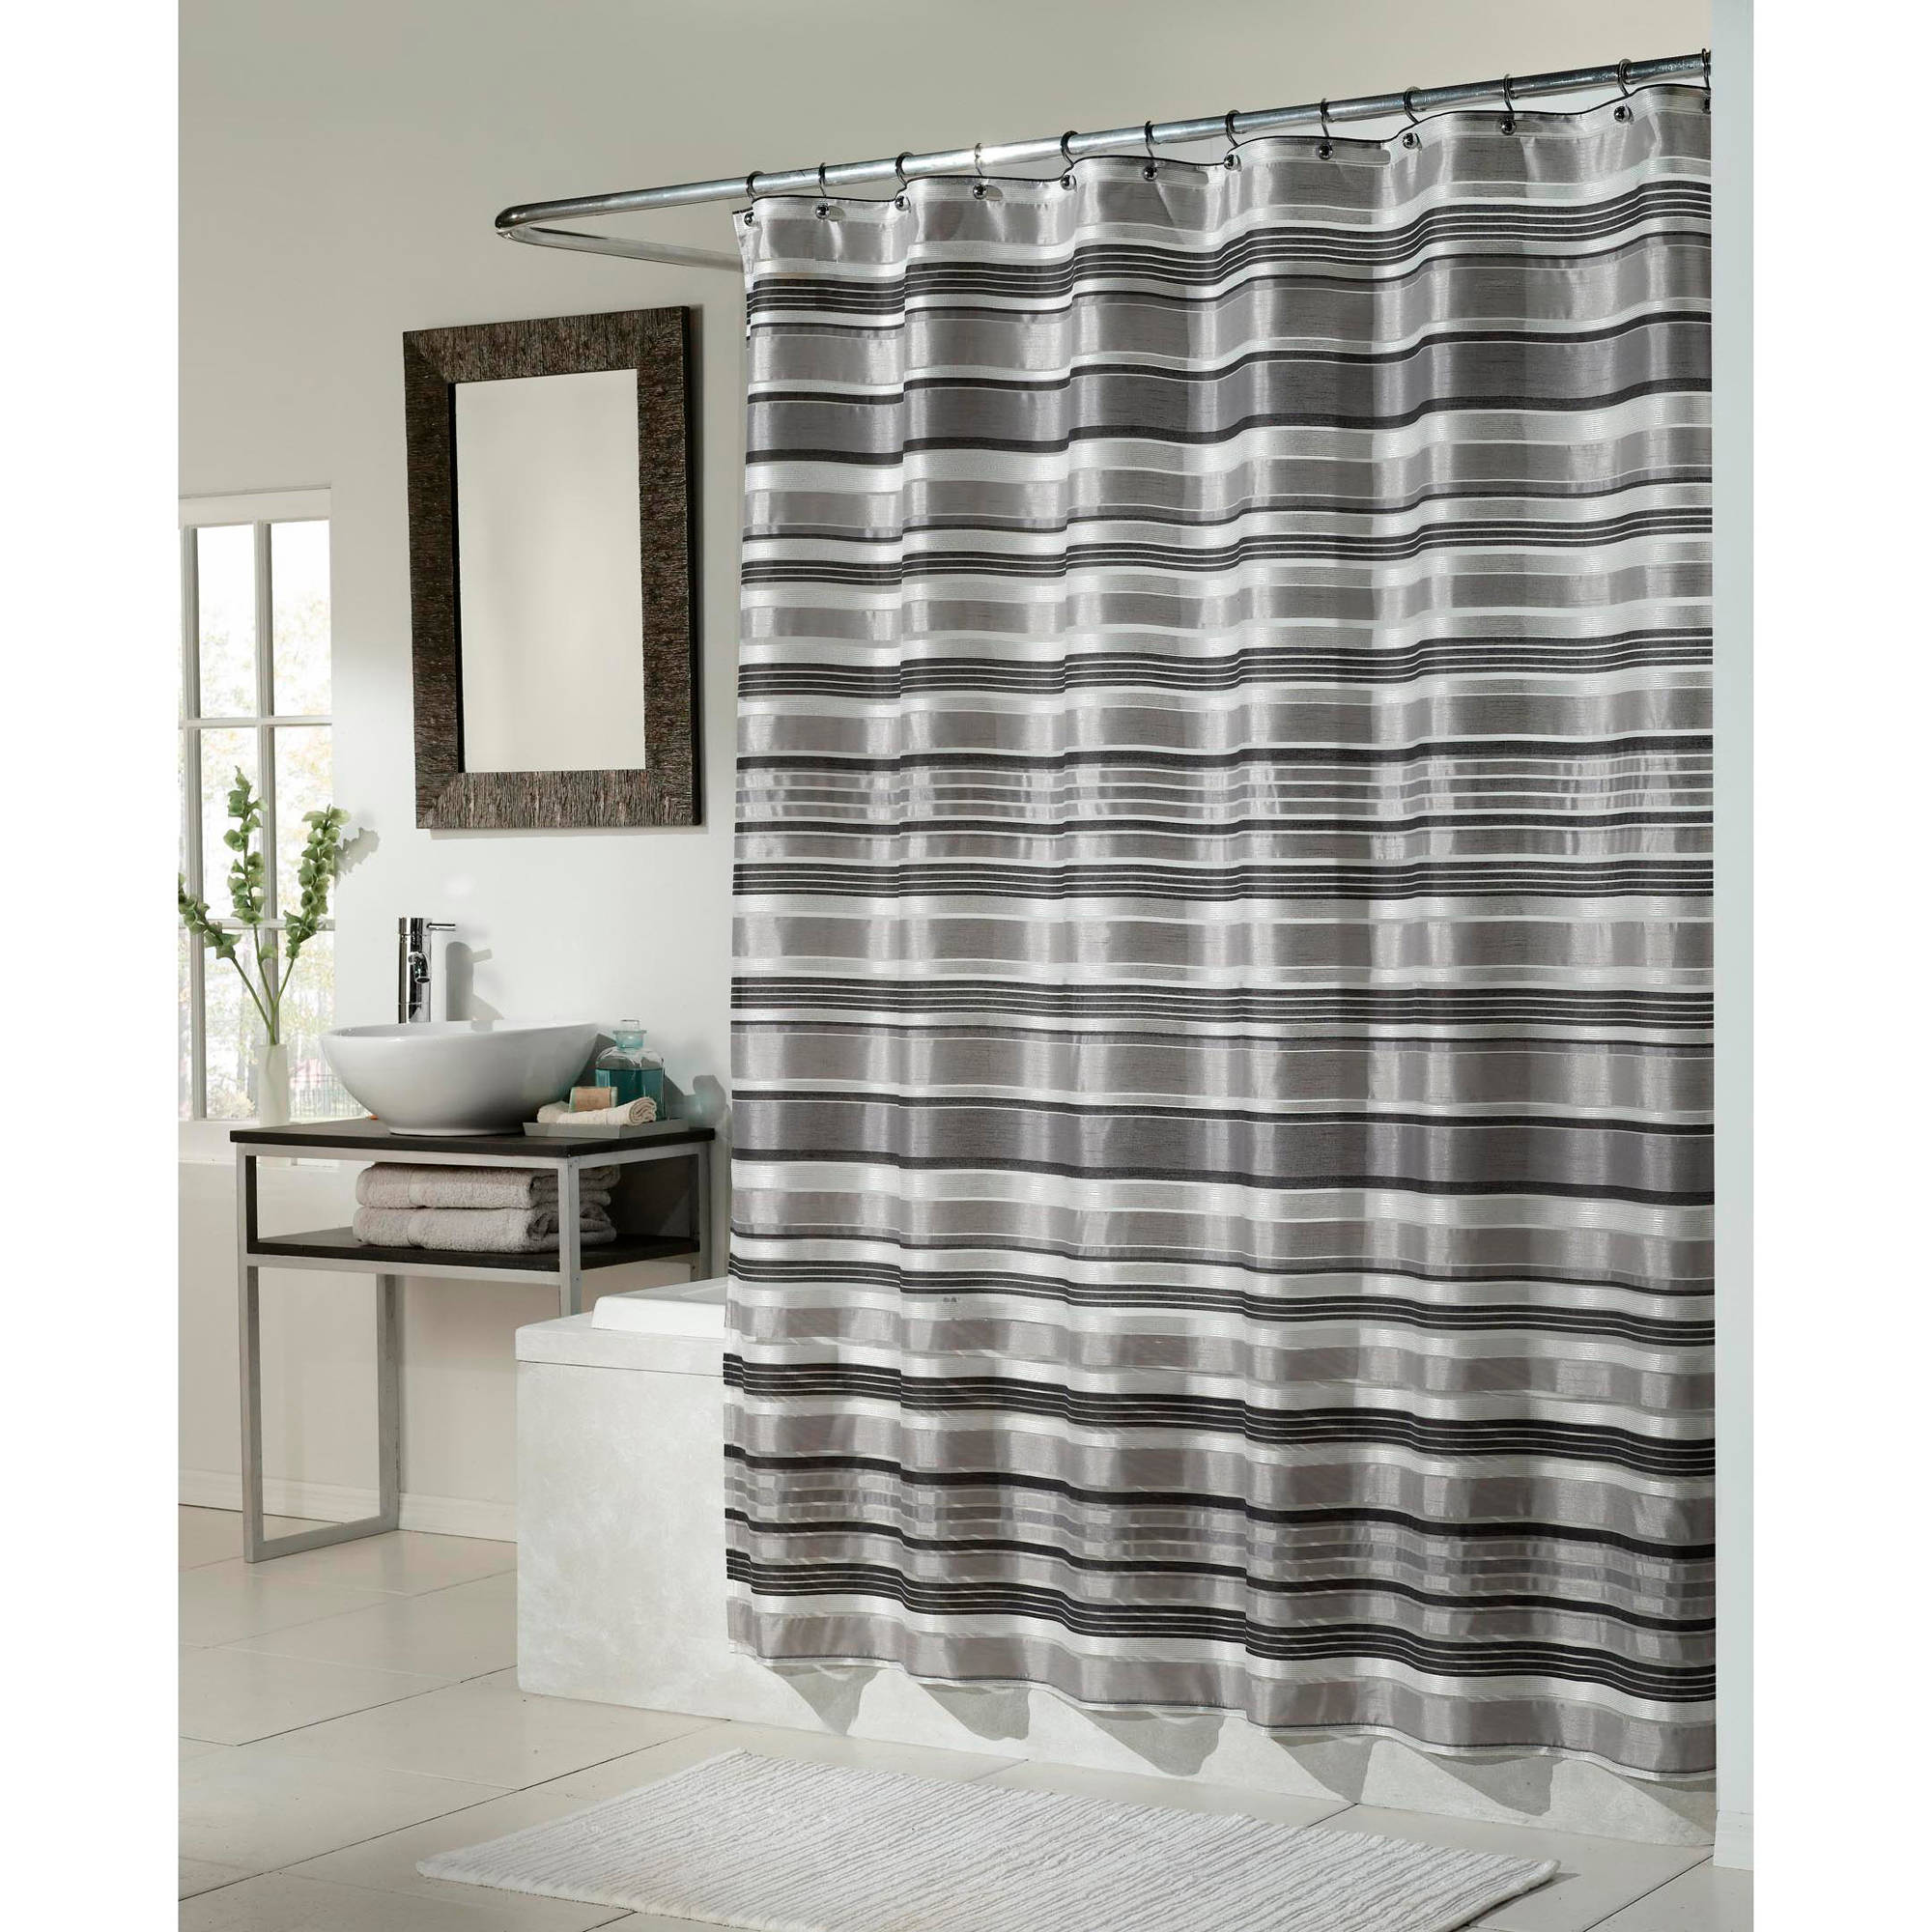 Glacier Fabric Shower Curtain, Black Silver Combination